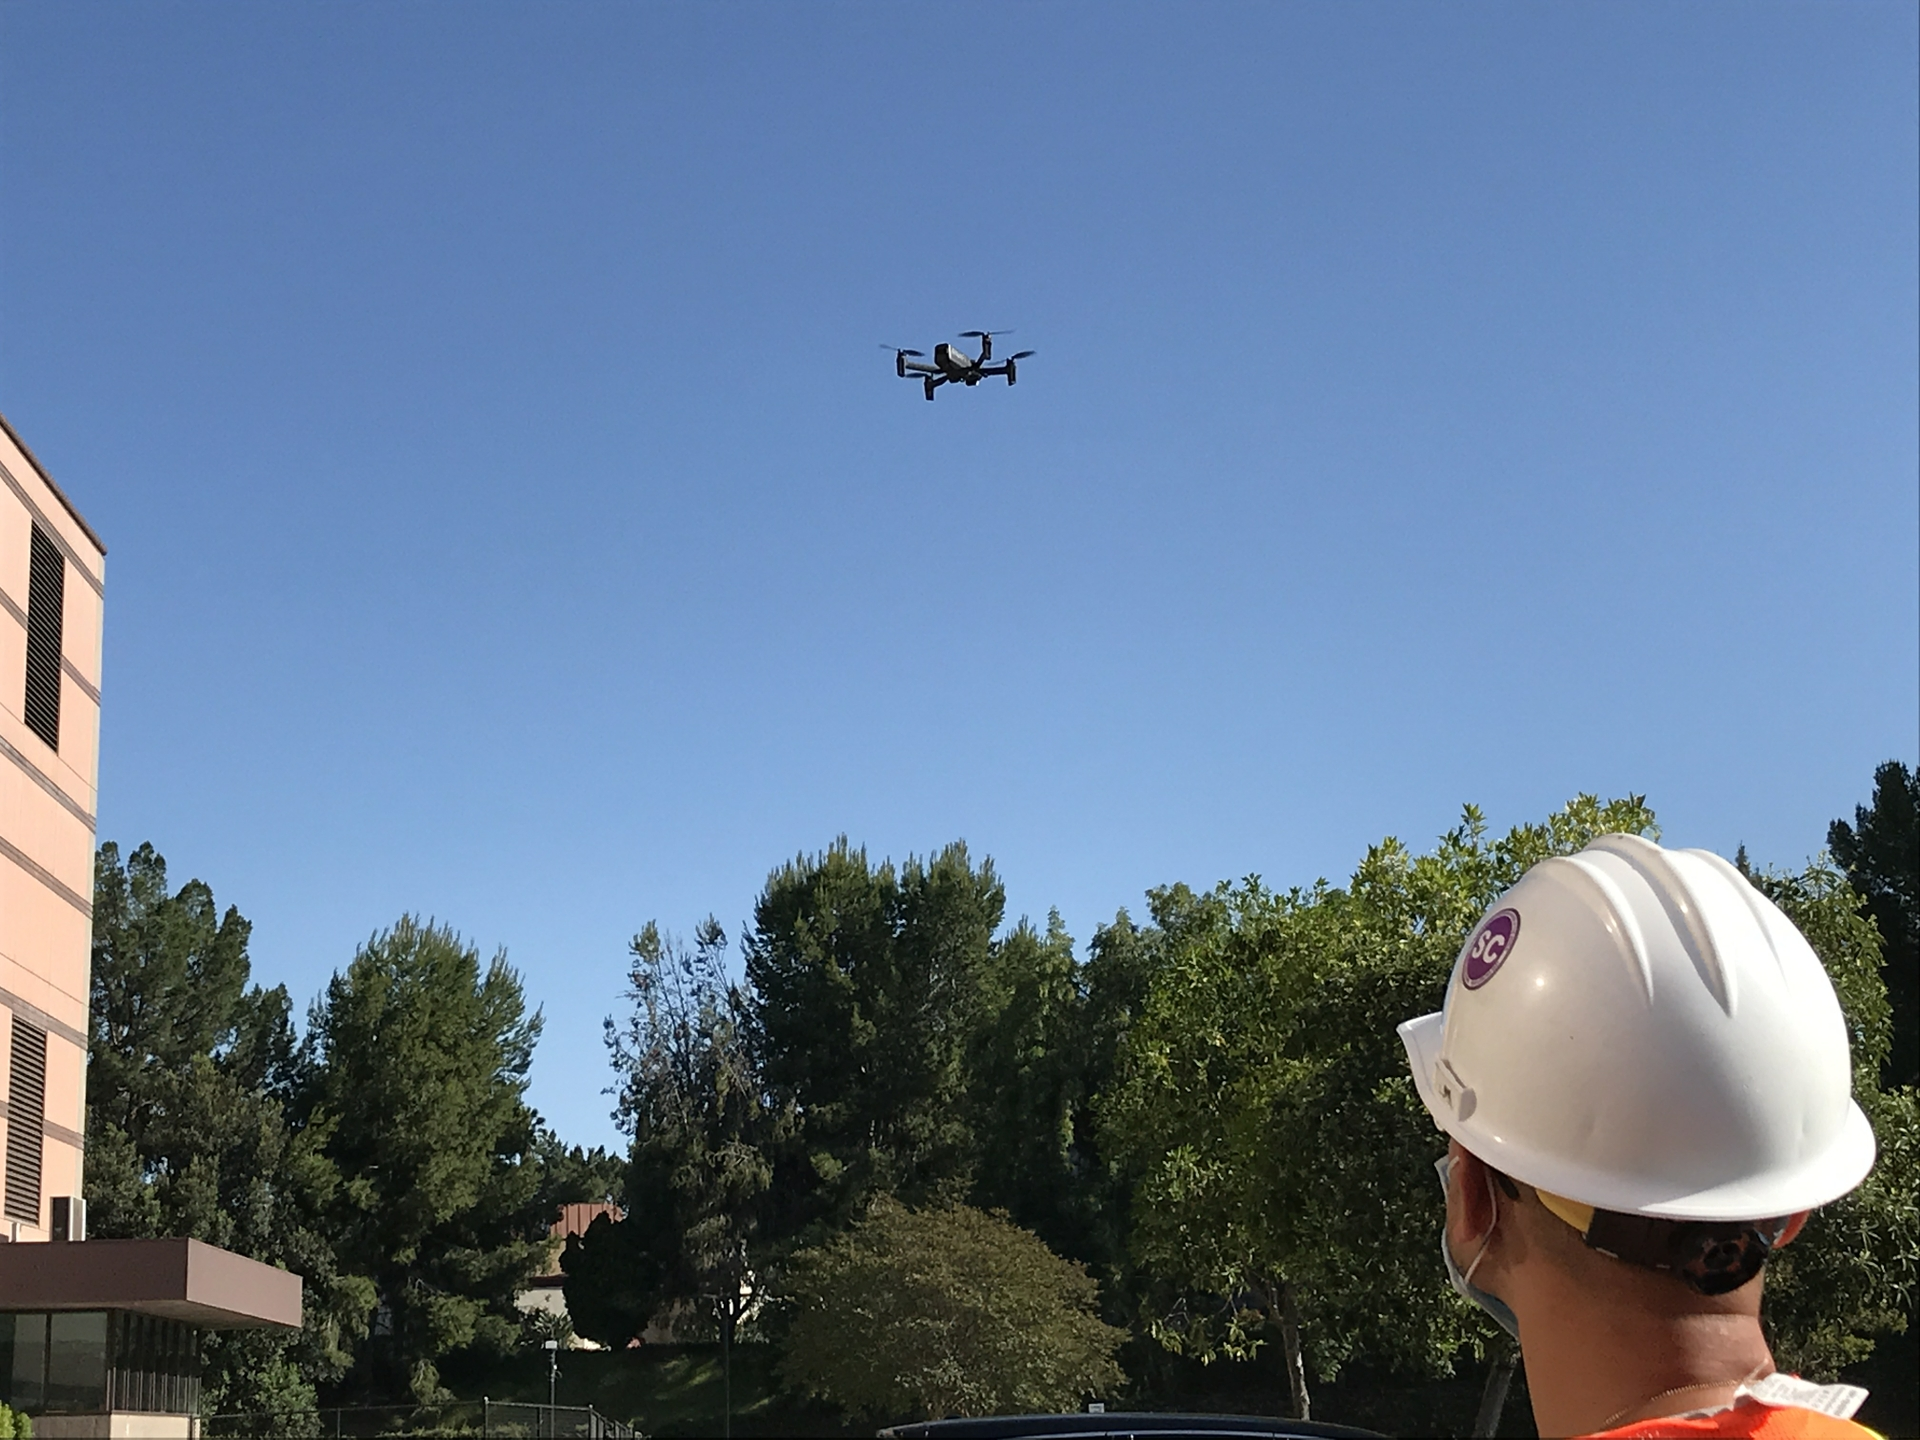 Patrick Le, an SCE engineer who started flying this drone last year, calls it safer and more effective because of the quality of data delivered without putting anyone in harm's way.